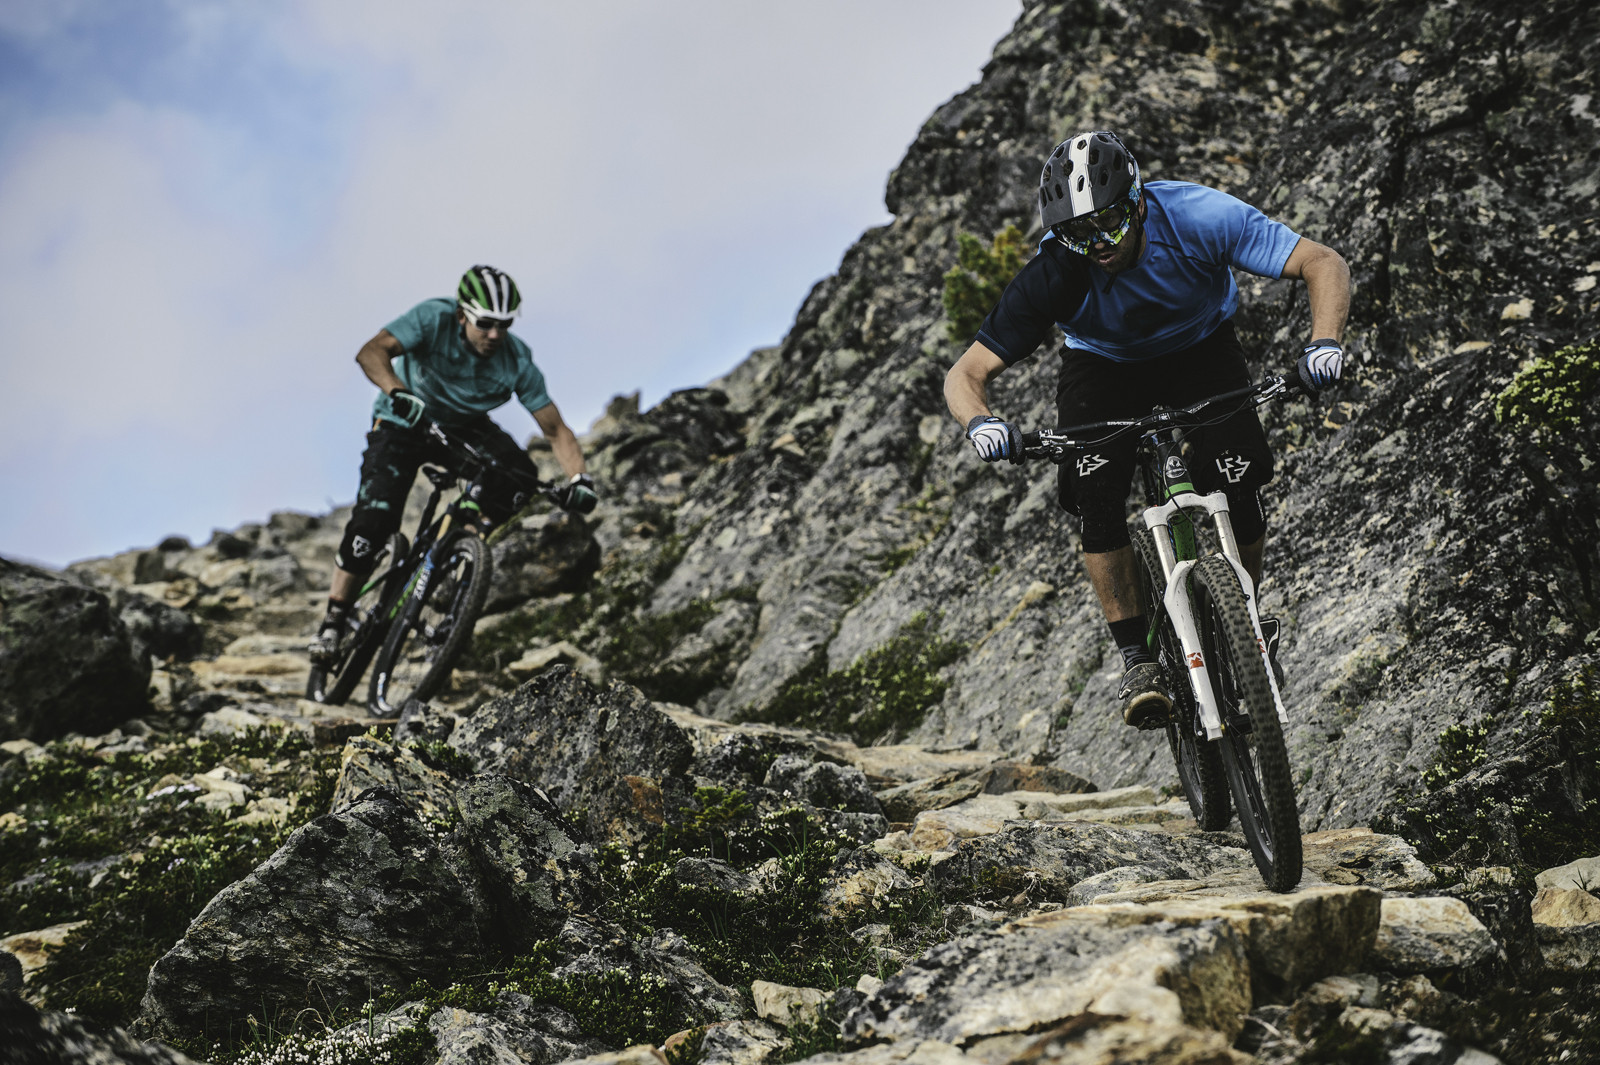 Wade Simmons and Andreas Hessler - First Look: 2014 Rocky Mountain Altitude Rally Edition - Get Rowdy! - Mountain Biking Pictures - Vital MTB